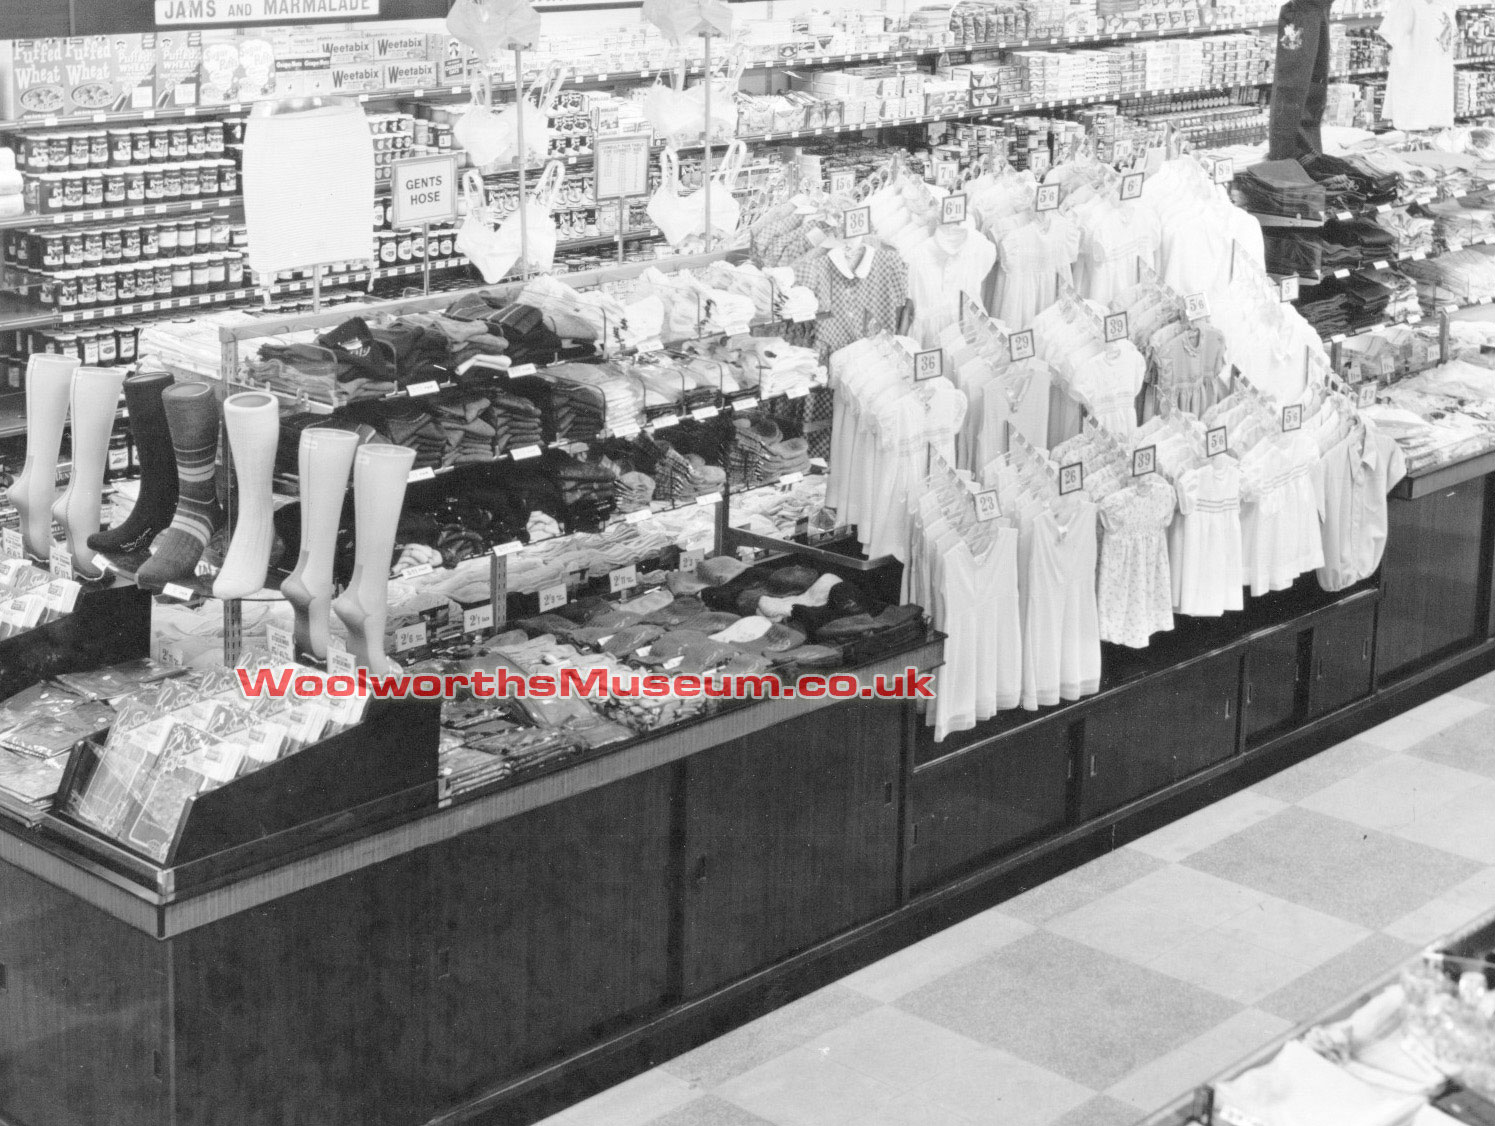 Hanging garment displays like this started to appear in Woolworth stores from 1950. Click the image for a larger version with more detail in a new window